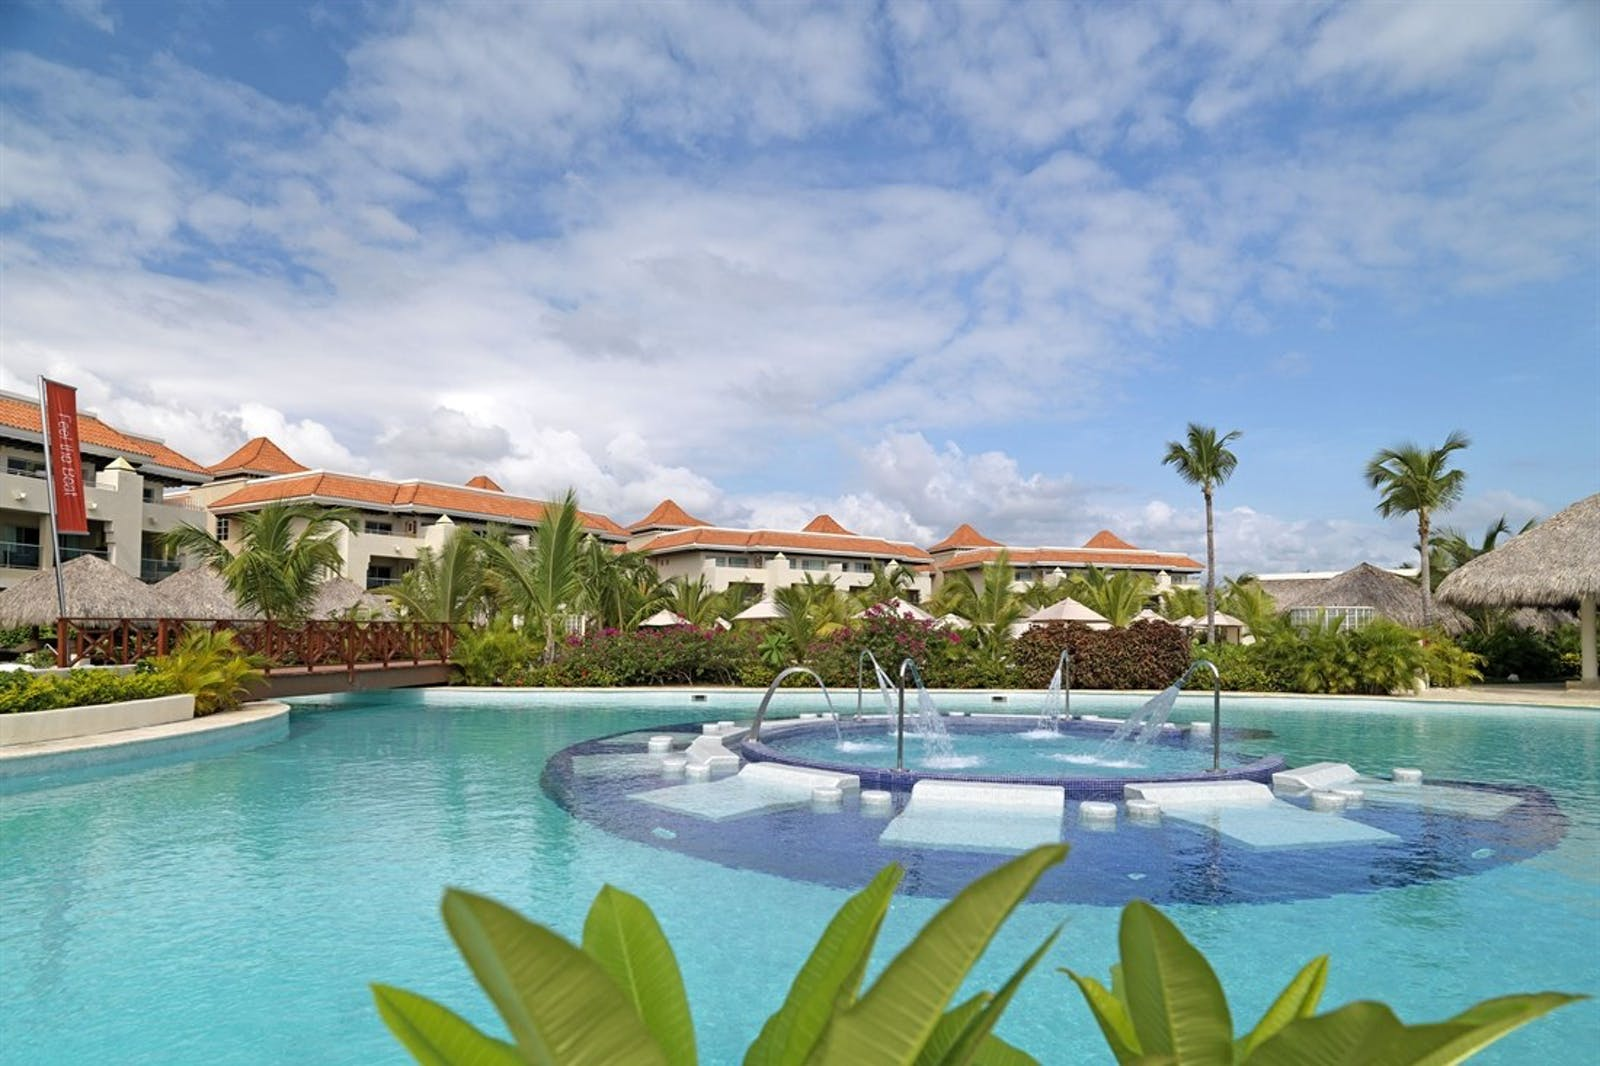 Main Pool at The Reserve at Paradisus Palma Real, Dominican Republic